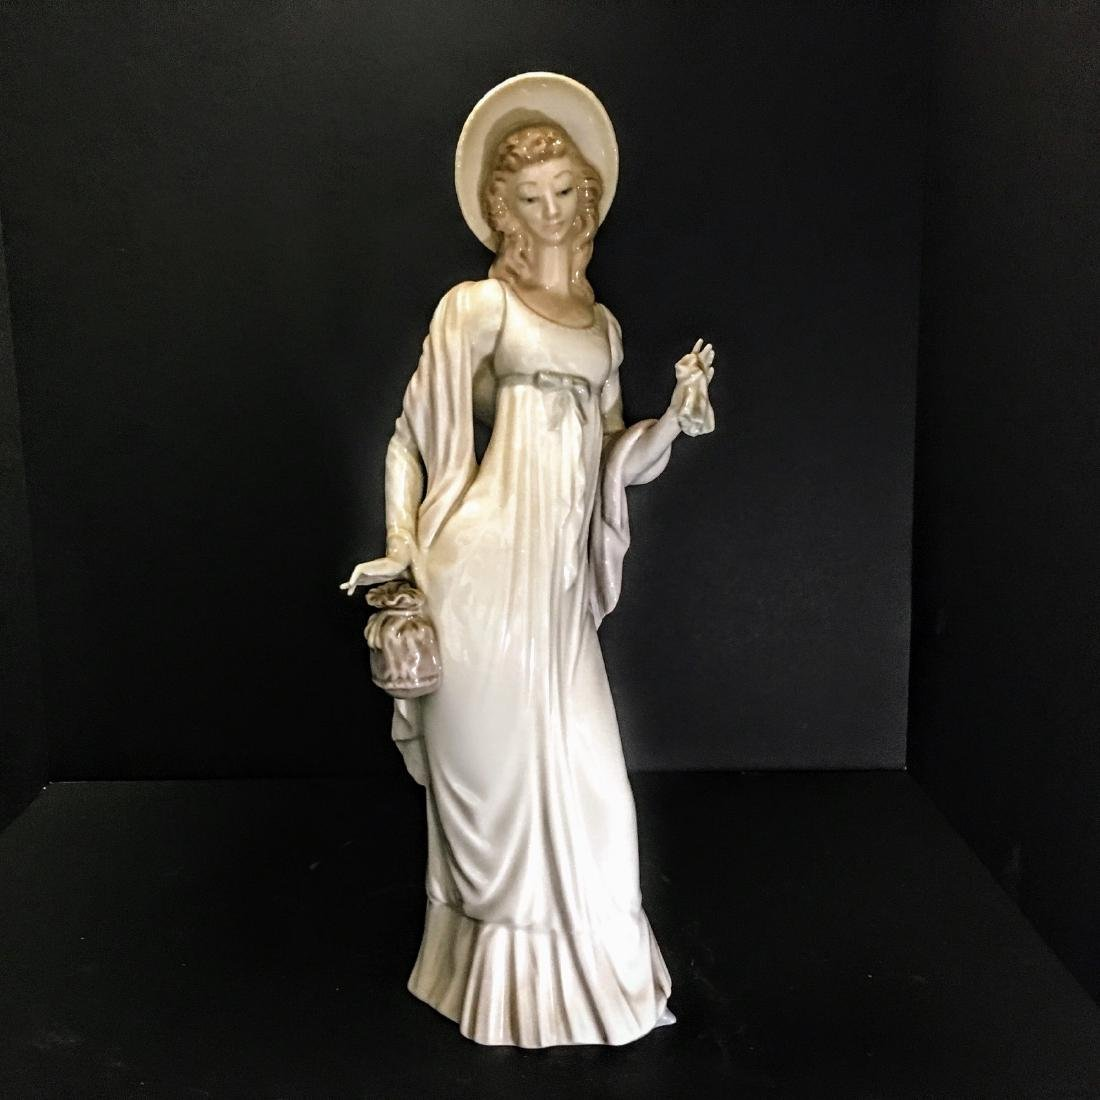 Lladro Figurine - Girl with hat and purse.